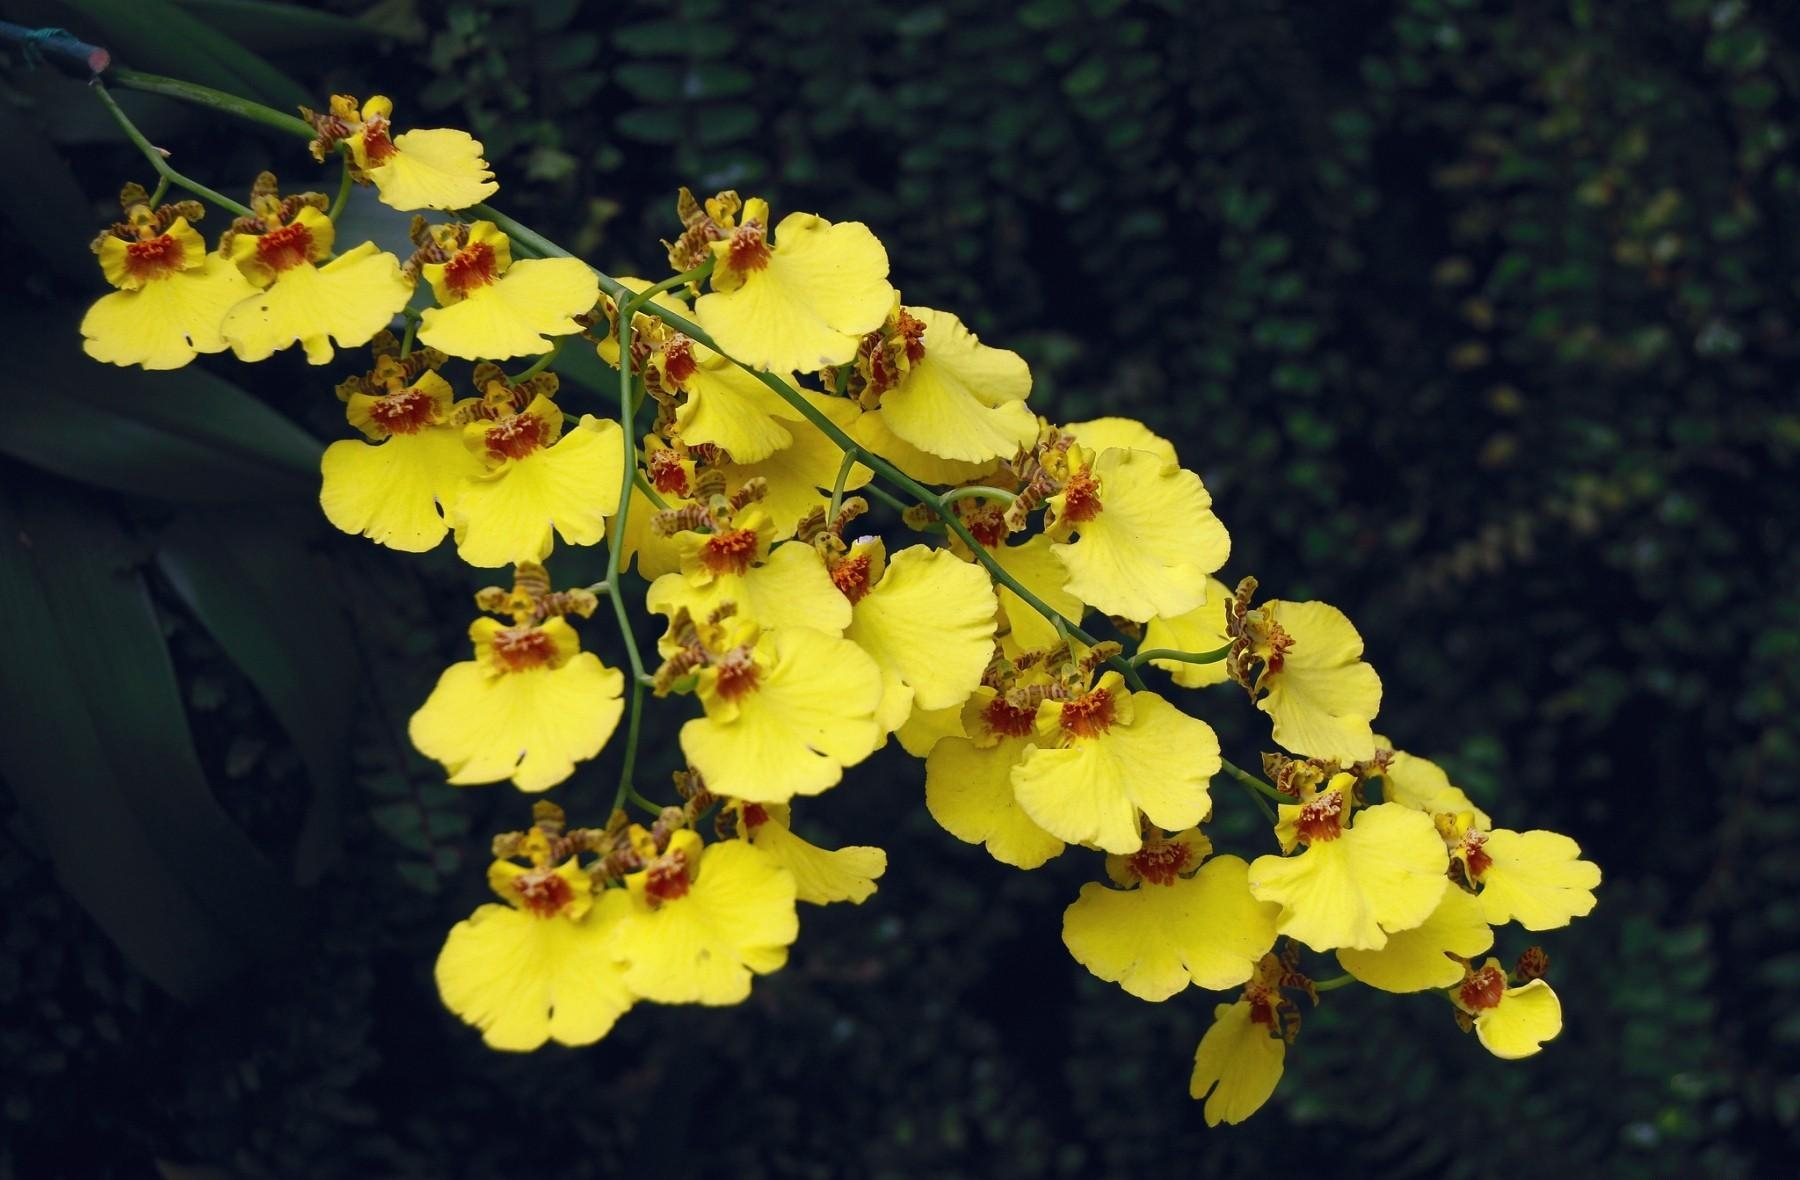 137088 download wallpaper Branch, Flowers, Sharpness, Orchid screensavers and pictures for free